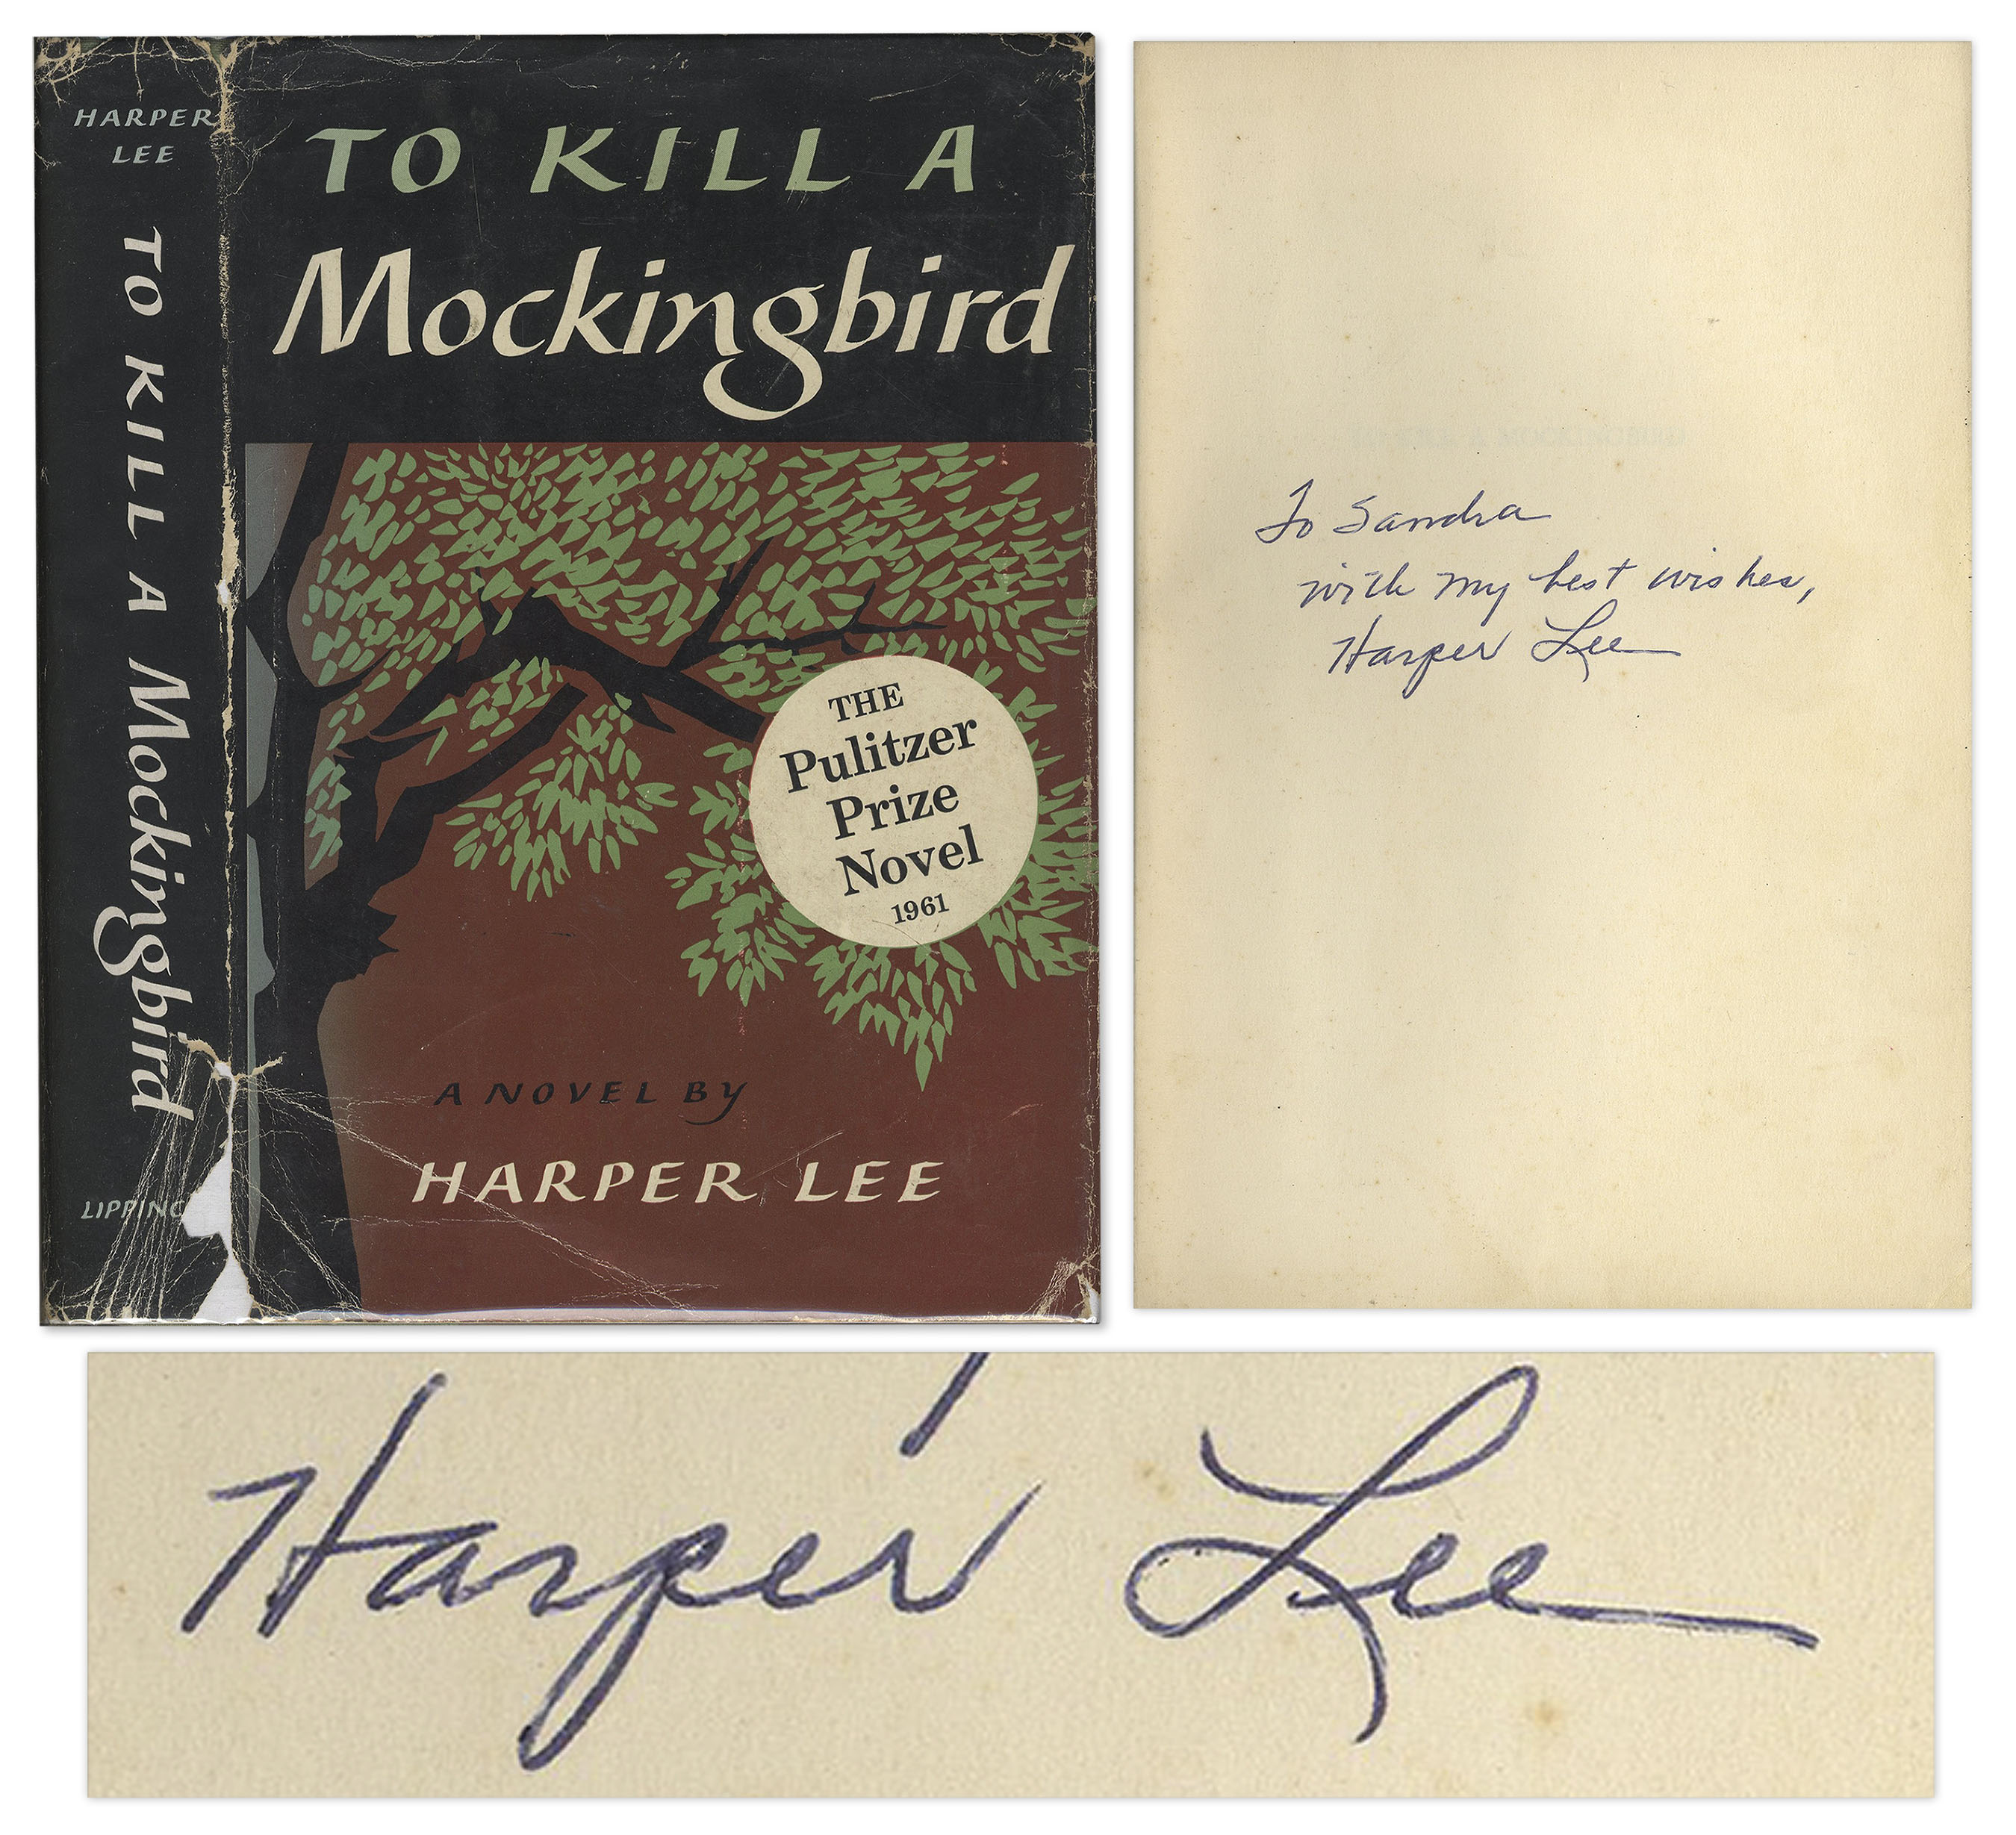 to kill a mocking bird types Home to kill a mockingbird q & a tkm: the different types of prej to kill a mockingbird tkm: the different types of prejudice depicted in lee's to kill a mockingbird.